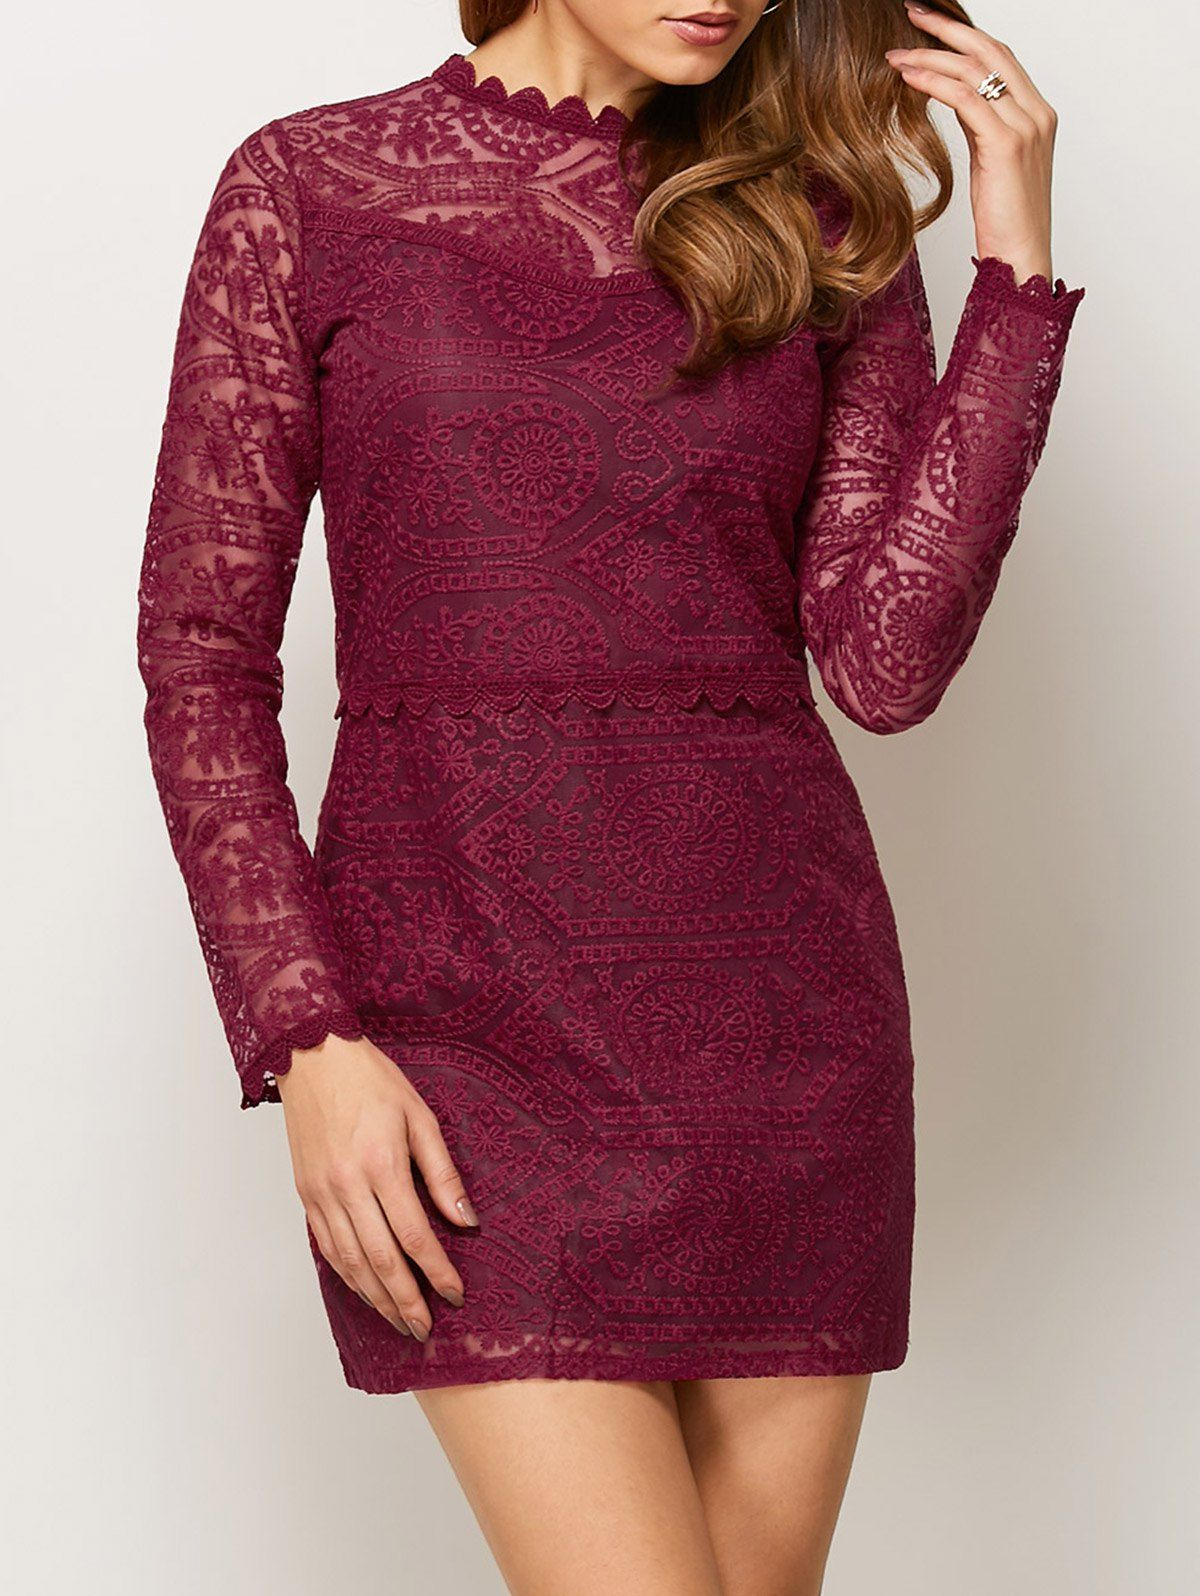 Lace ruff collar mini dress click clothing shoes jewelry